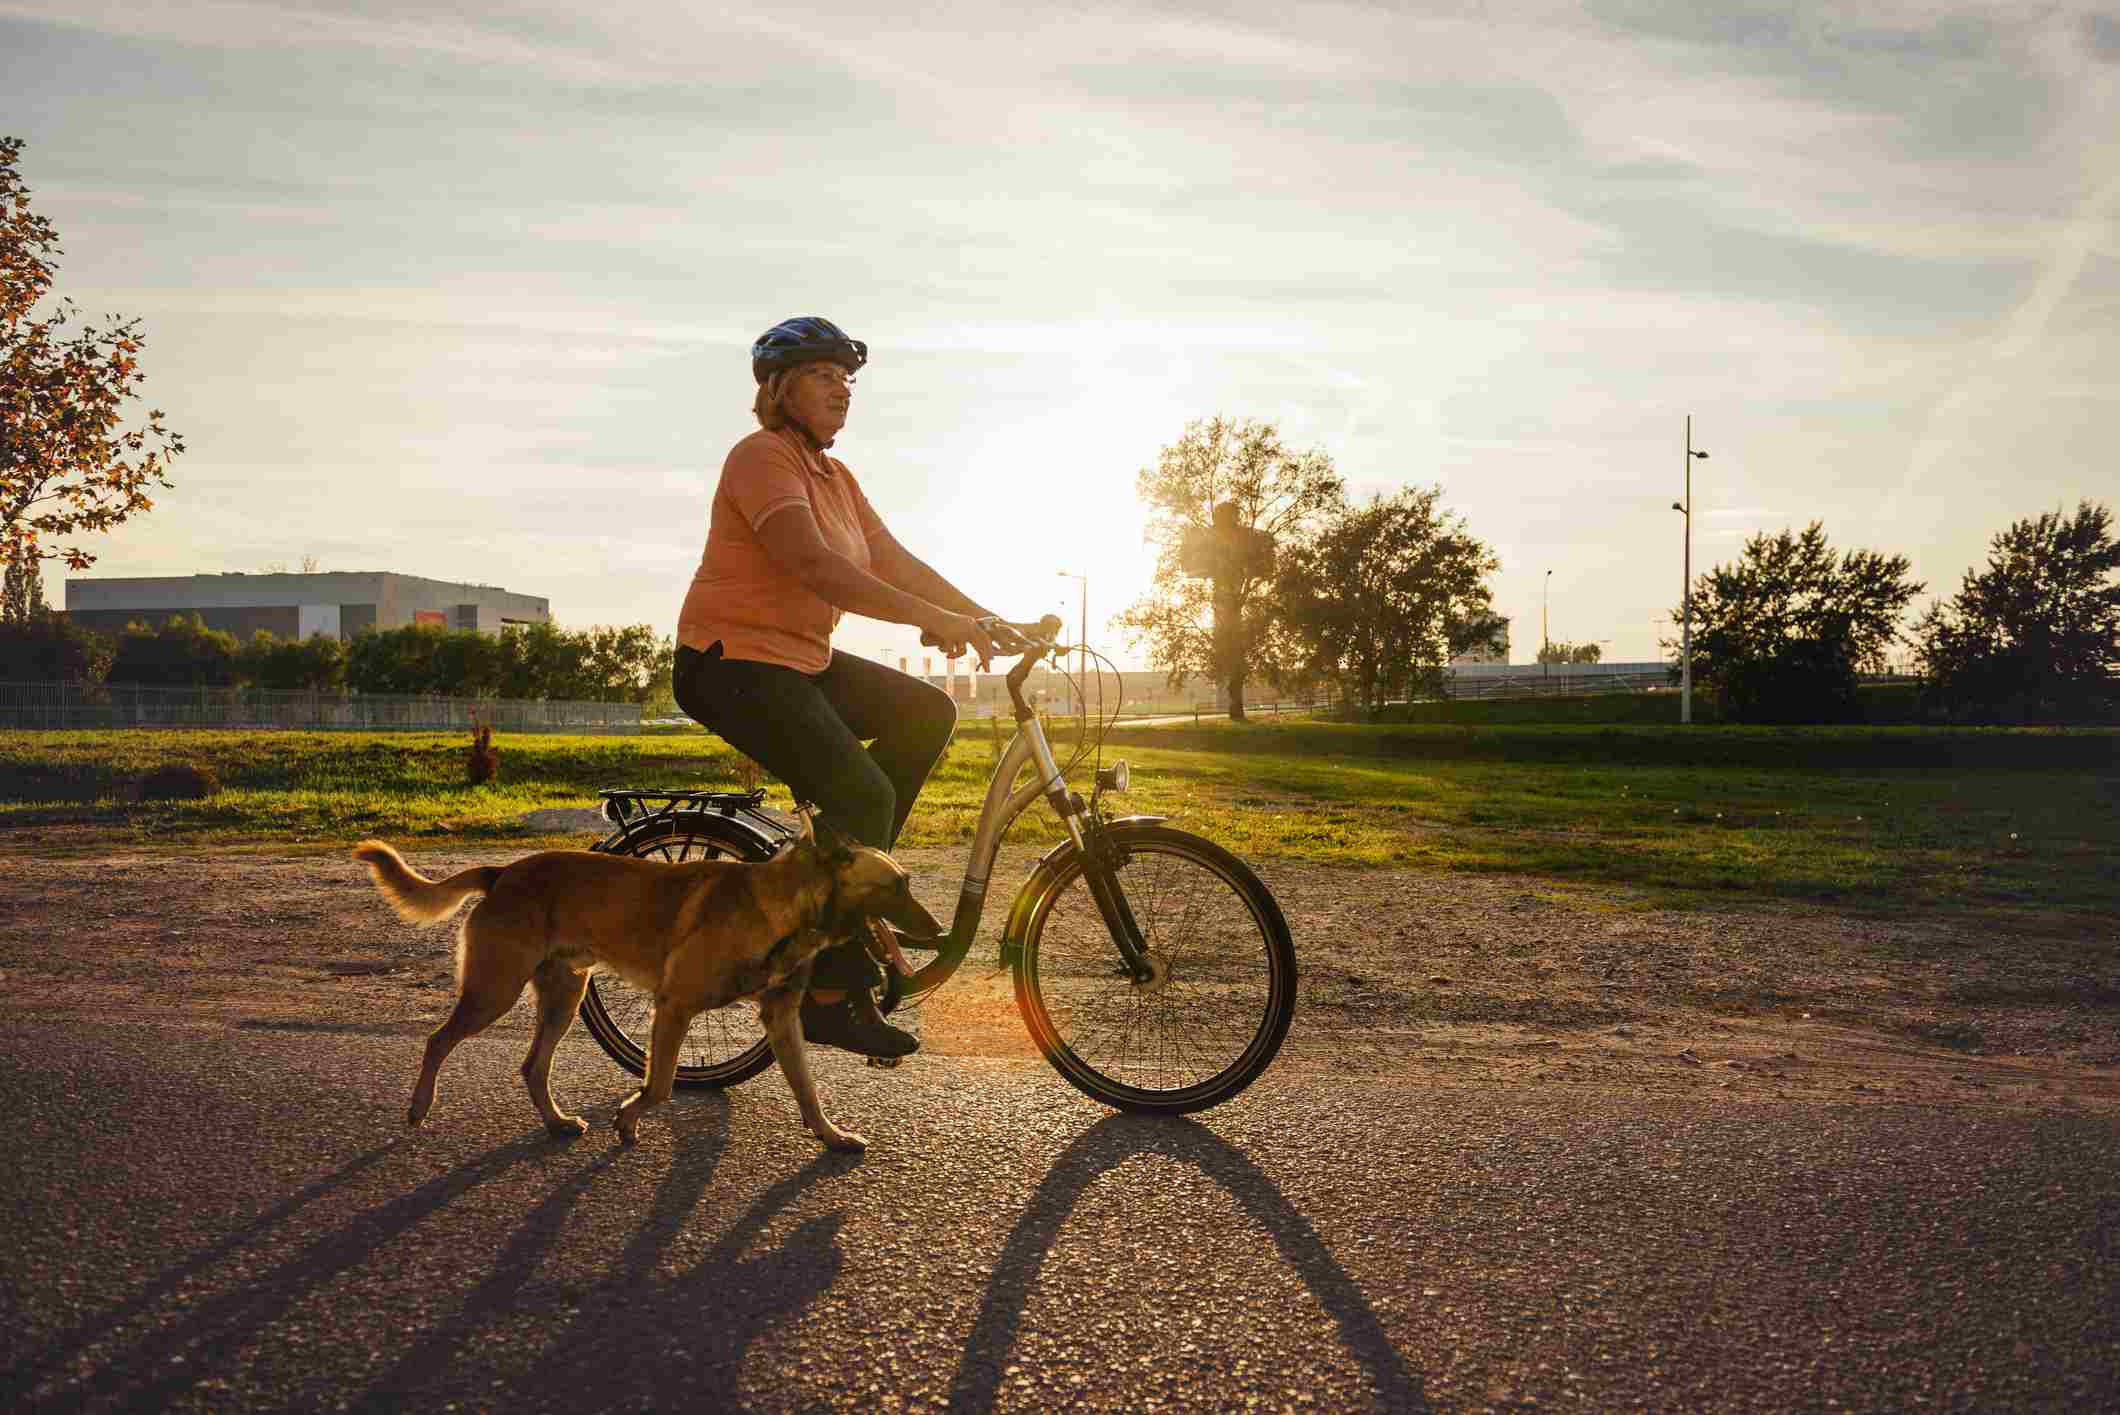 add_a_photo Buy the print Comp Save to Board Senior woman riding bicycle and walking Belgian Malinois dog